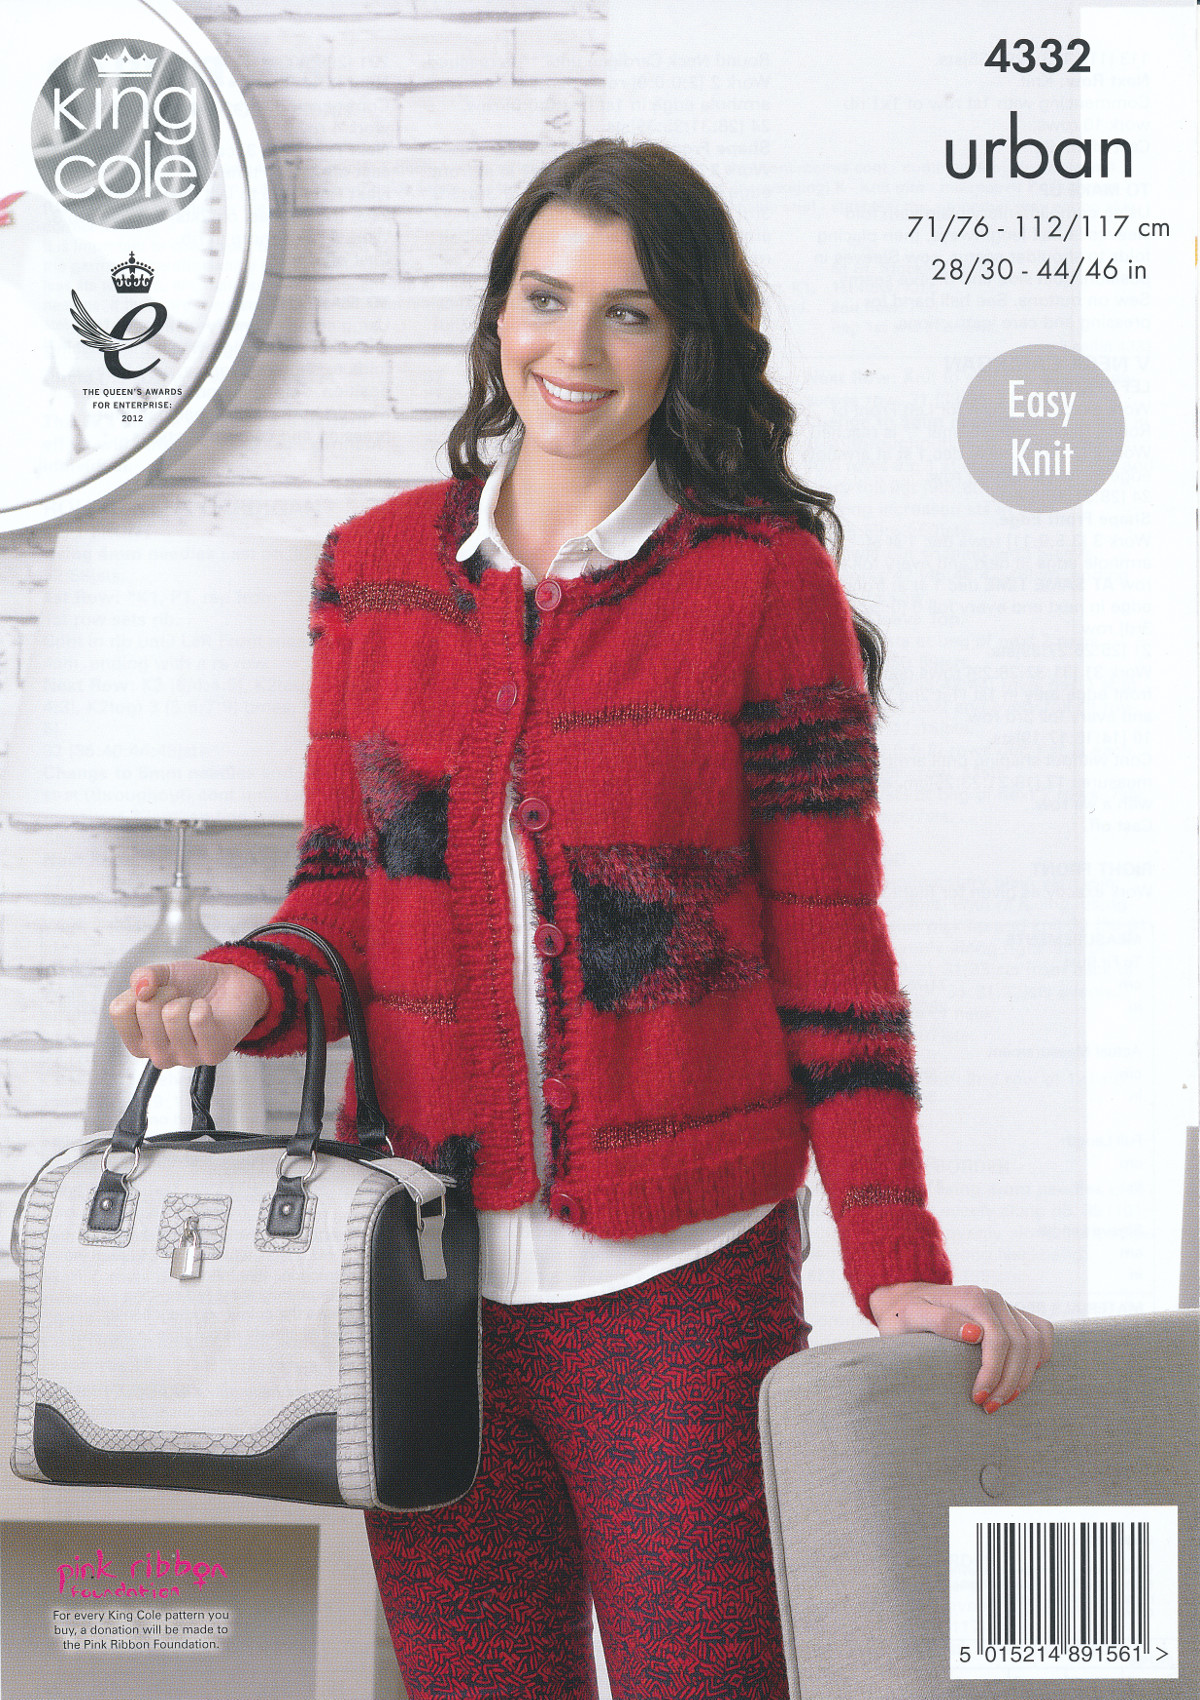 Womens Knitting Pattern King Cole Urban Easy Knit Long Sleeved Cardigans 4332...